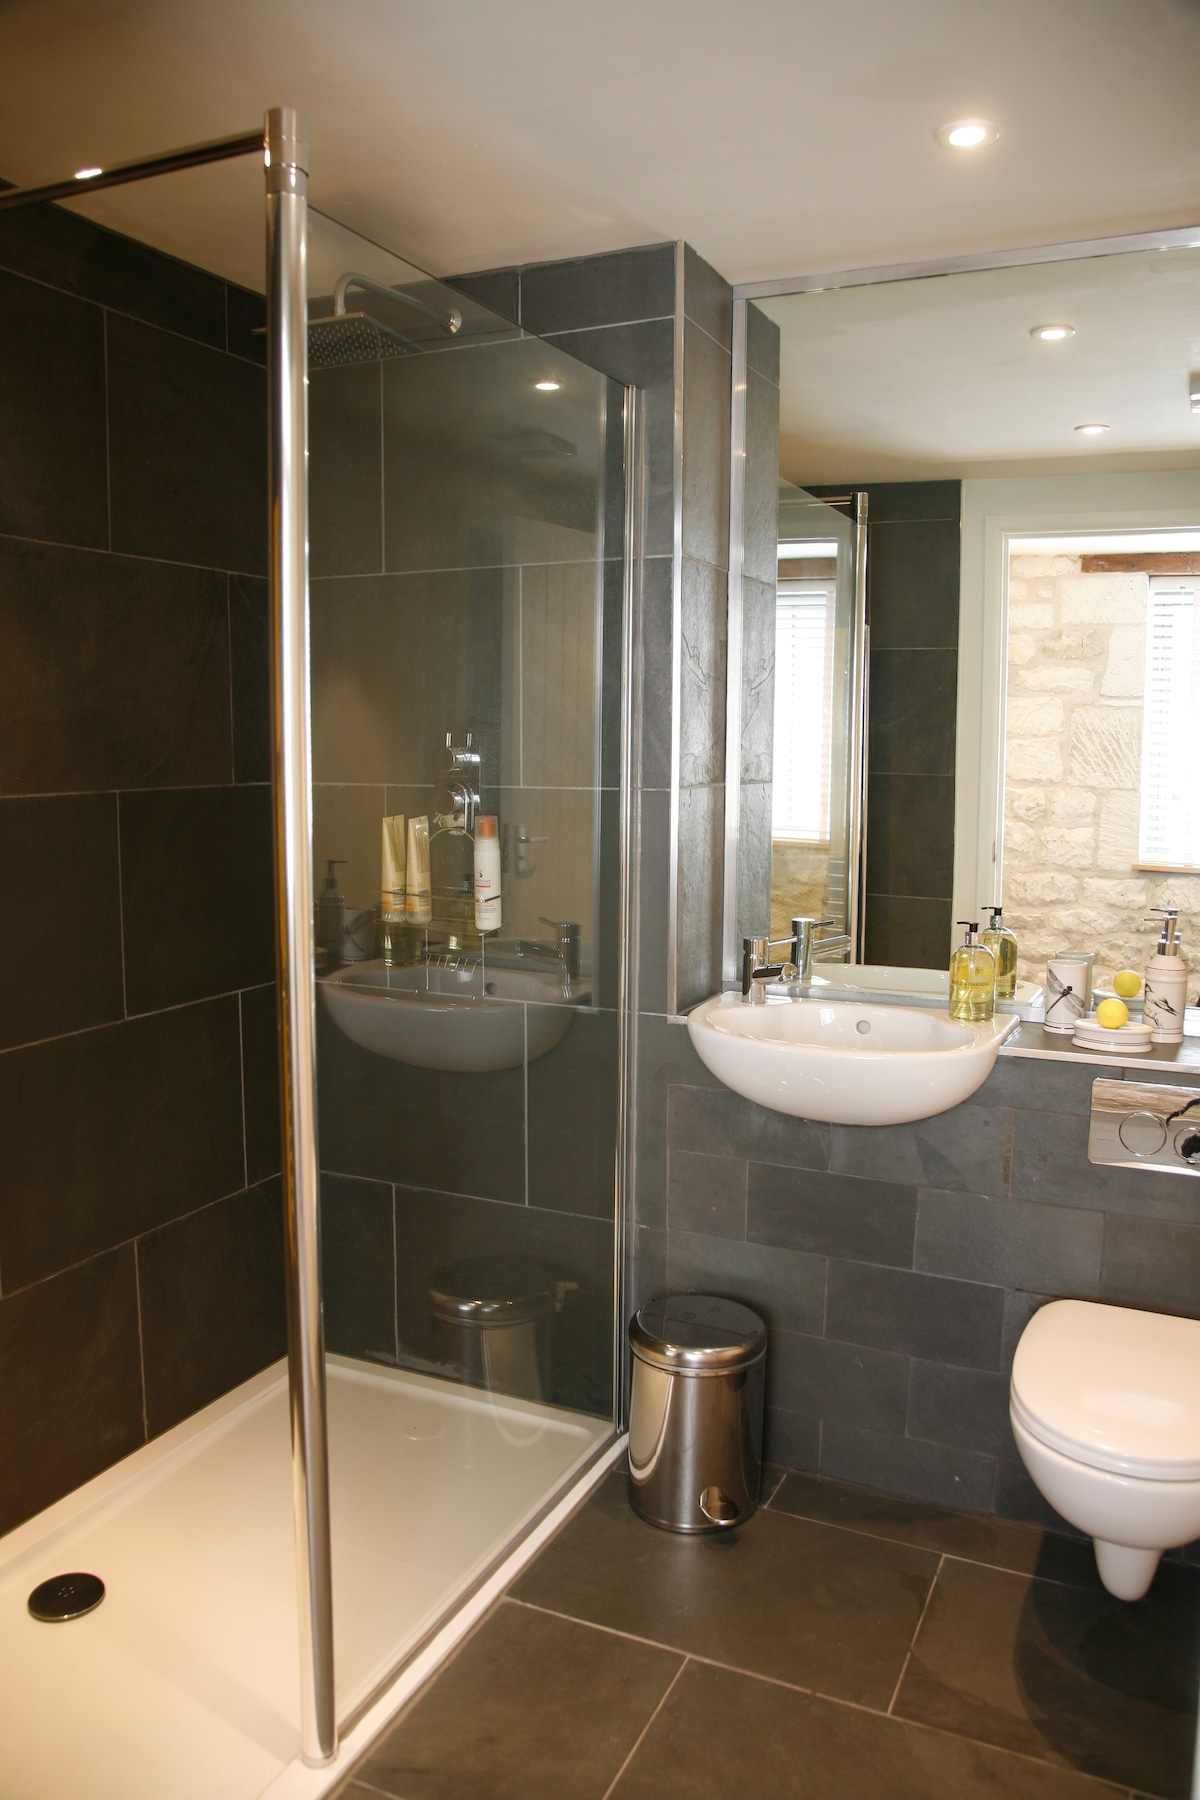 Slate lined bathroom with walk-in shower